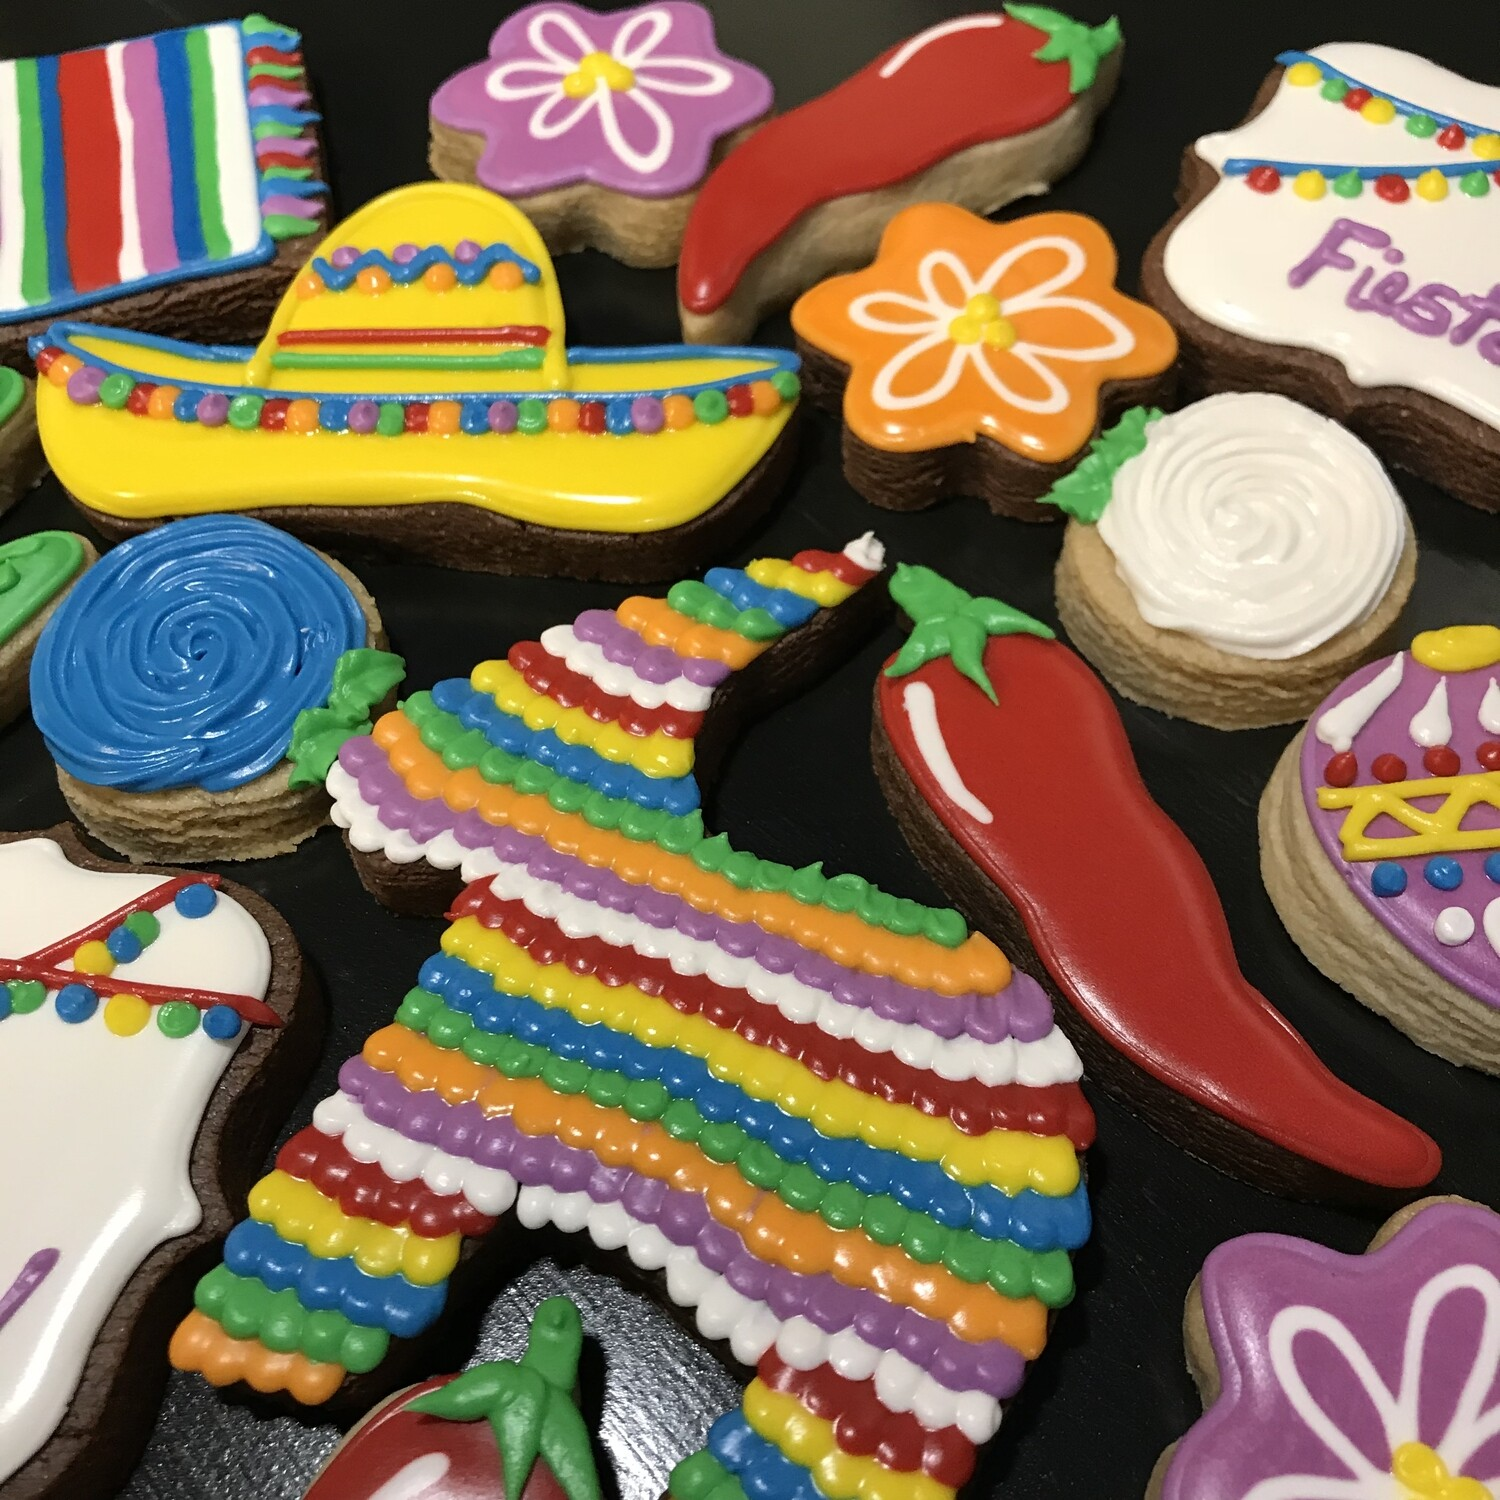 FIESTA! Decorating Workshop - SATURDAY, AUGUST 10th at 6:30 p.m. (TYLER WORK HUB)